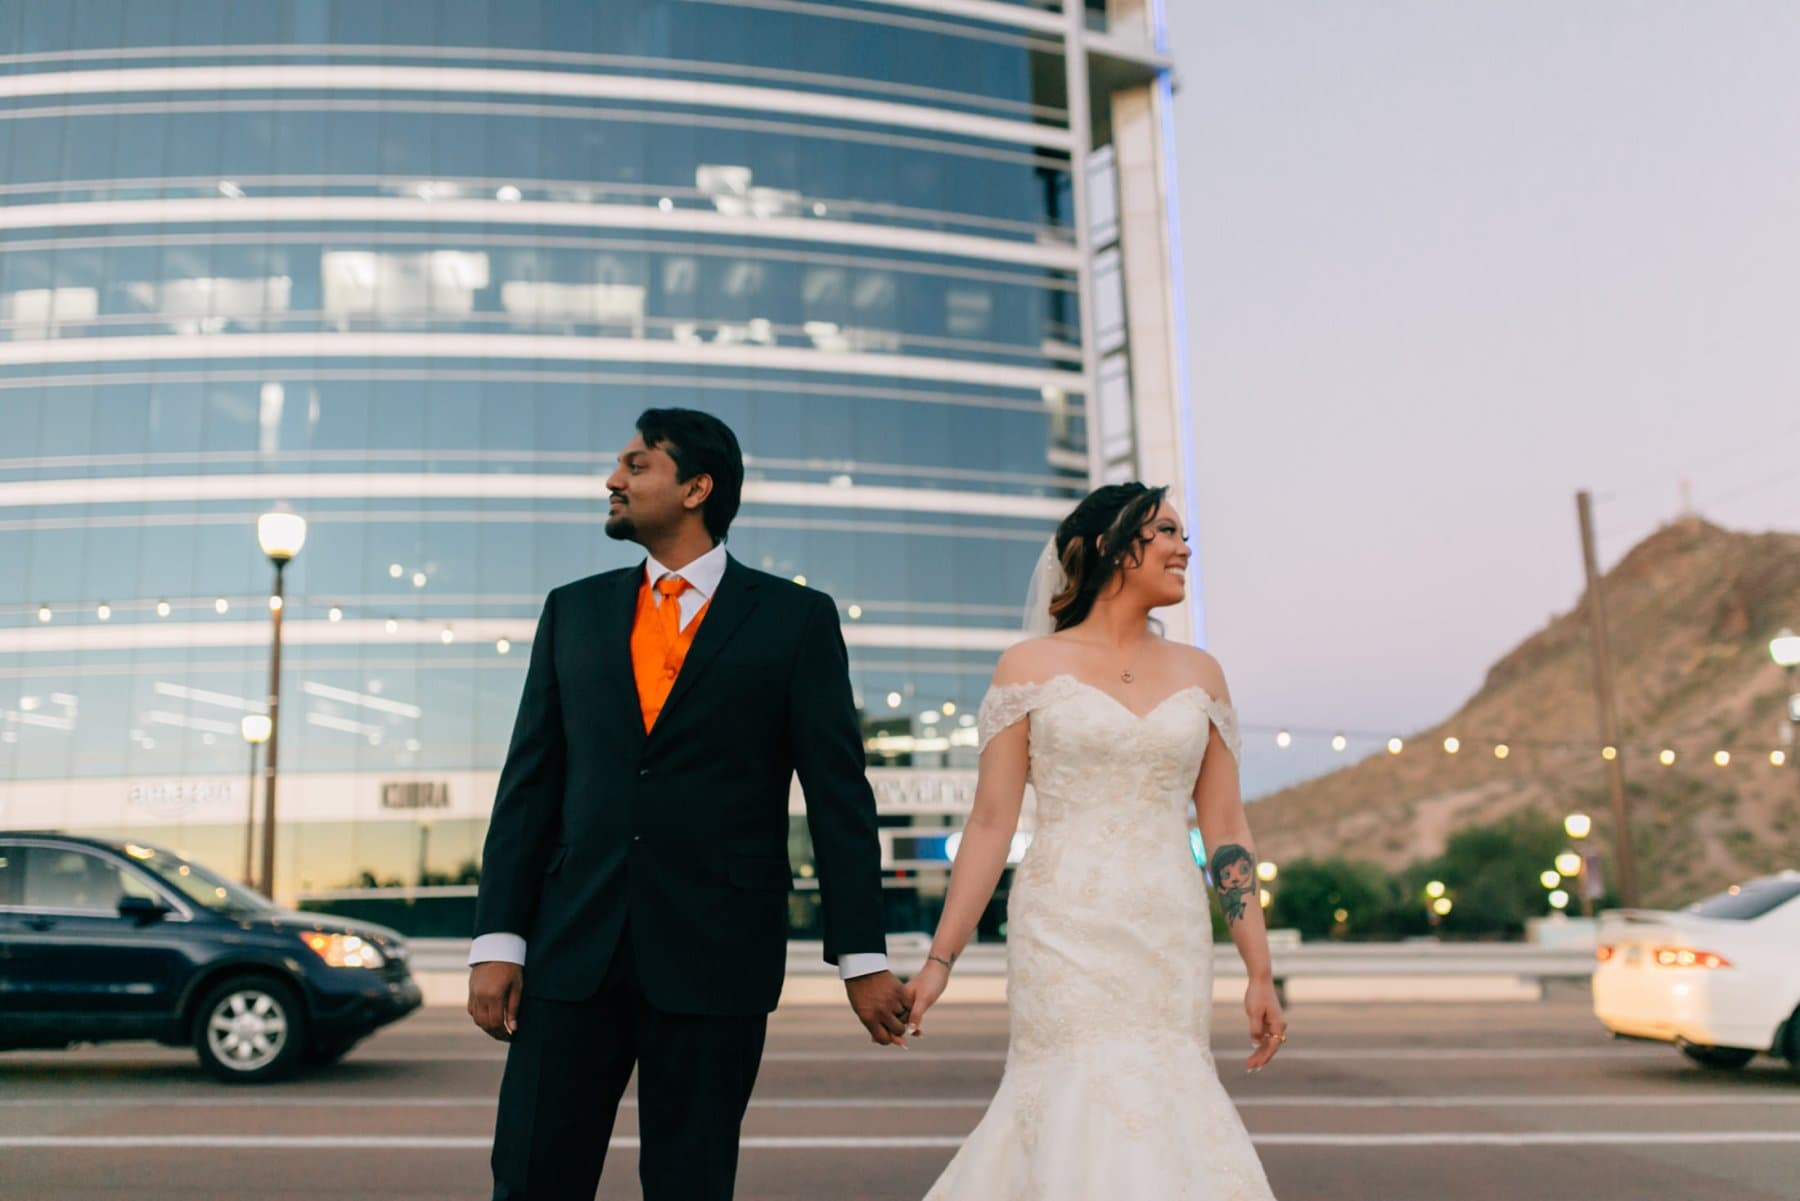 Tempe Town Lake bride and groom portraits at twilight